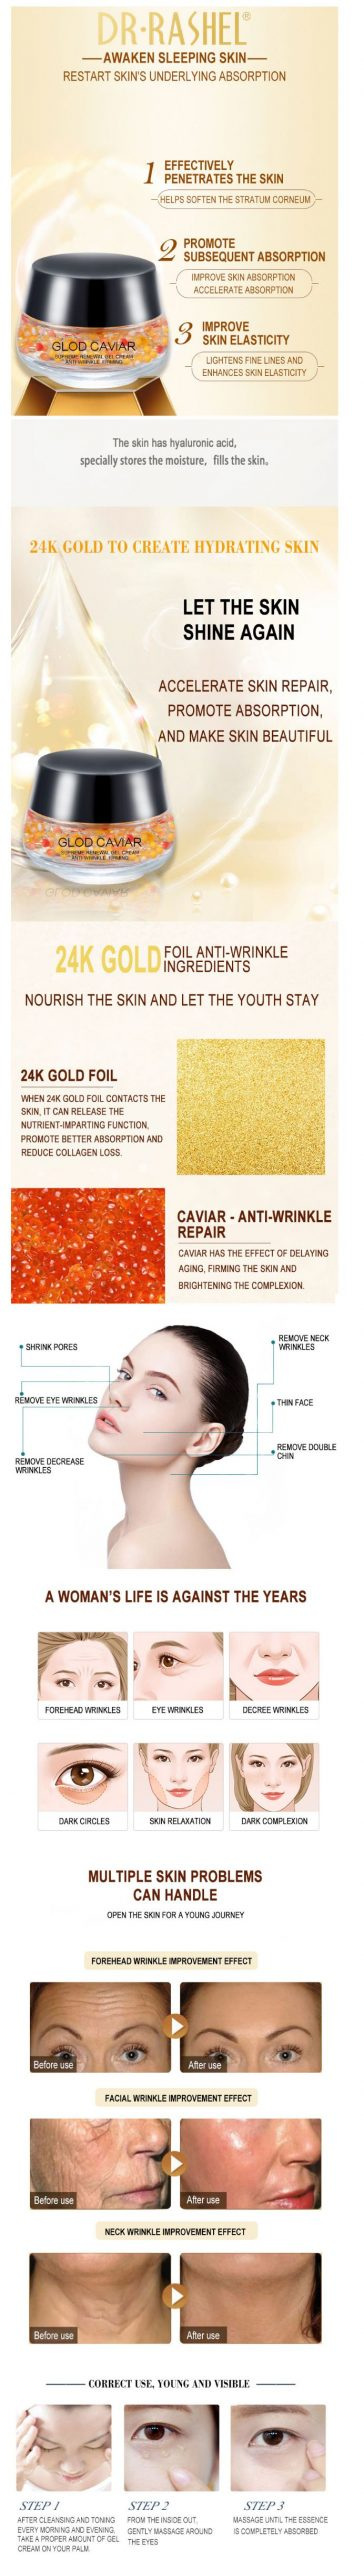 Gold Caviar Complex Anti-Wrinkle Luxury Regenerating Essence Gel Cream DRL-1453